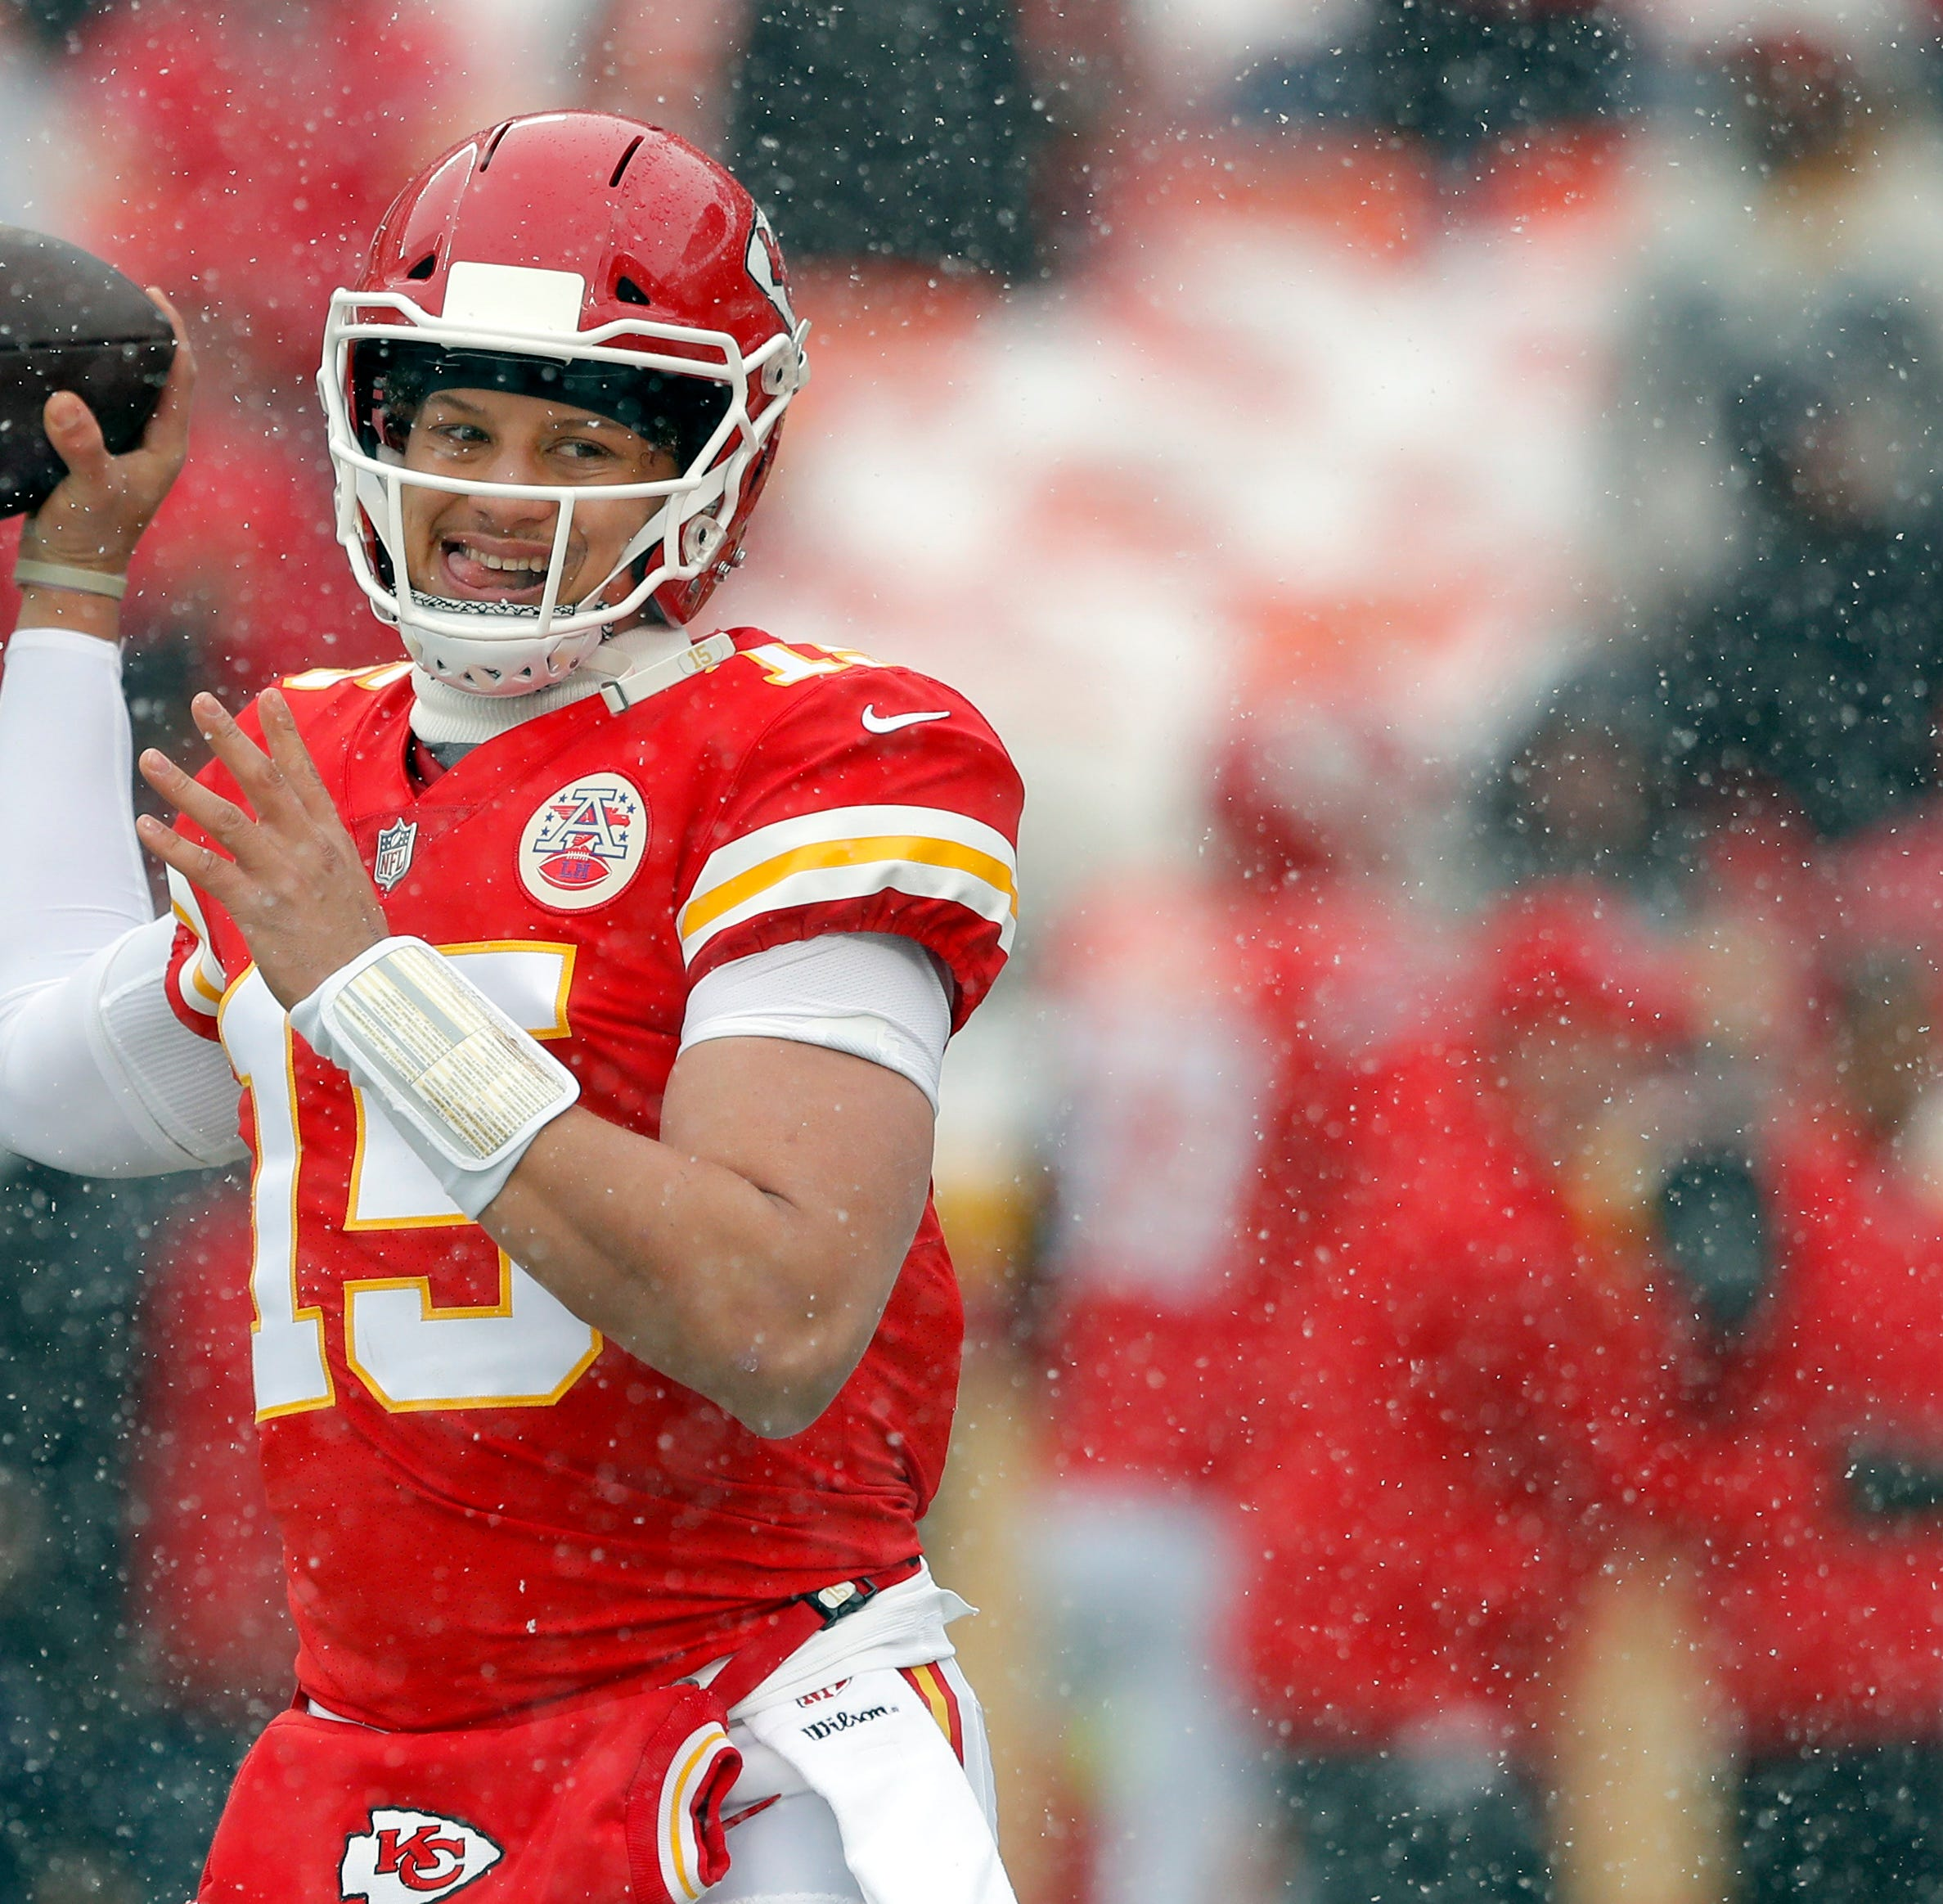 Chiefs coach to fans: Enough with the snowballs